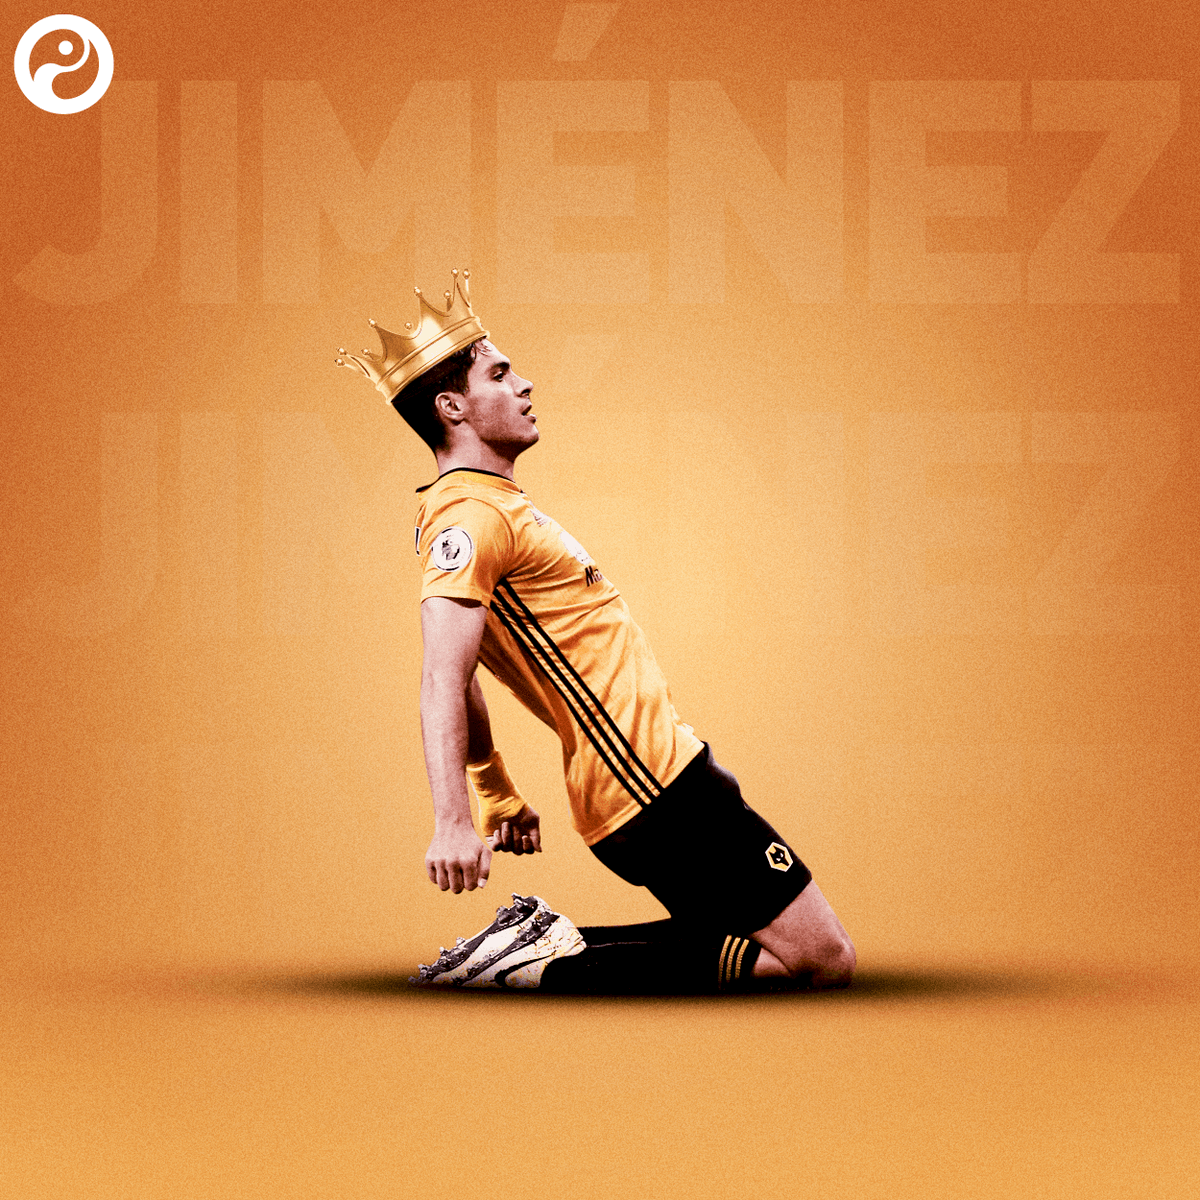 Raúl Jiménez has now scored 20 goals in all competitions this season, only Sergio Agüero is the only Premier League player with more.  One of the best centre-forwards around.  <br>http://pic.twitter.com/dnHxDThyFN